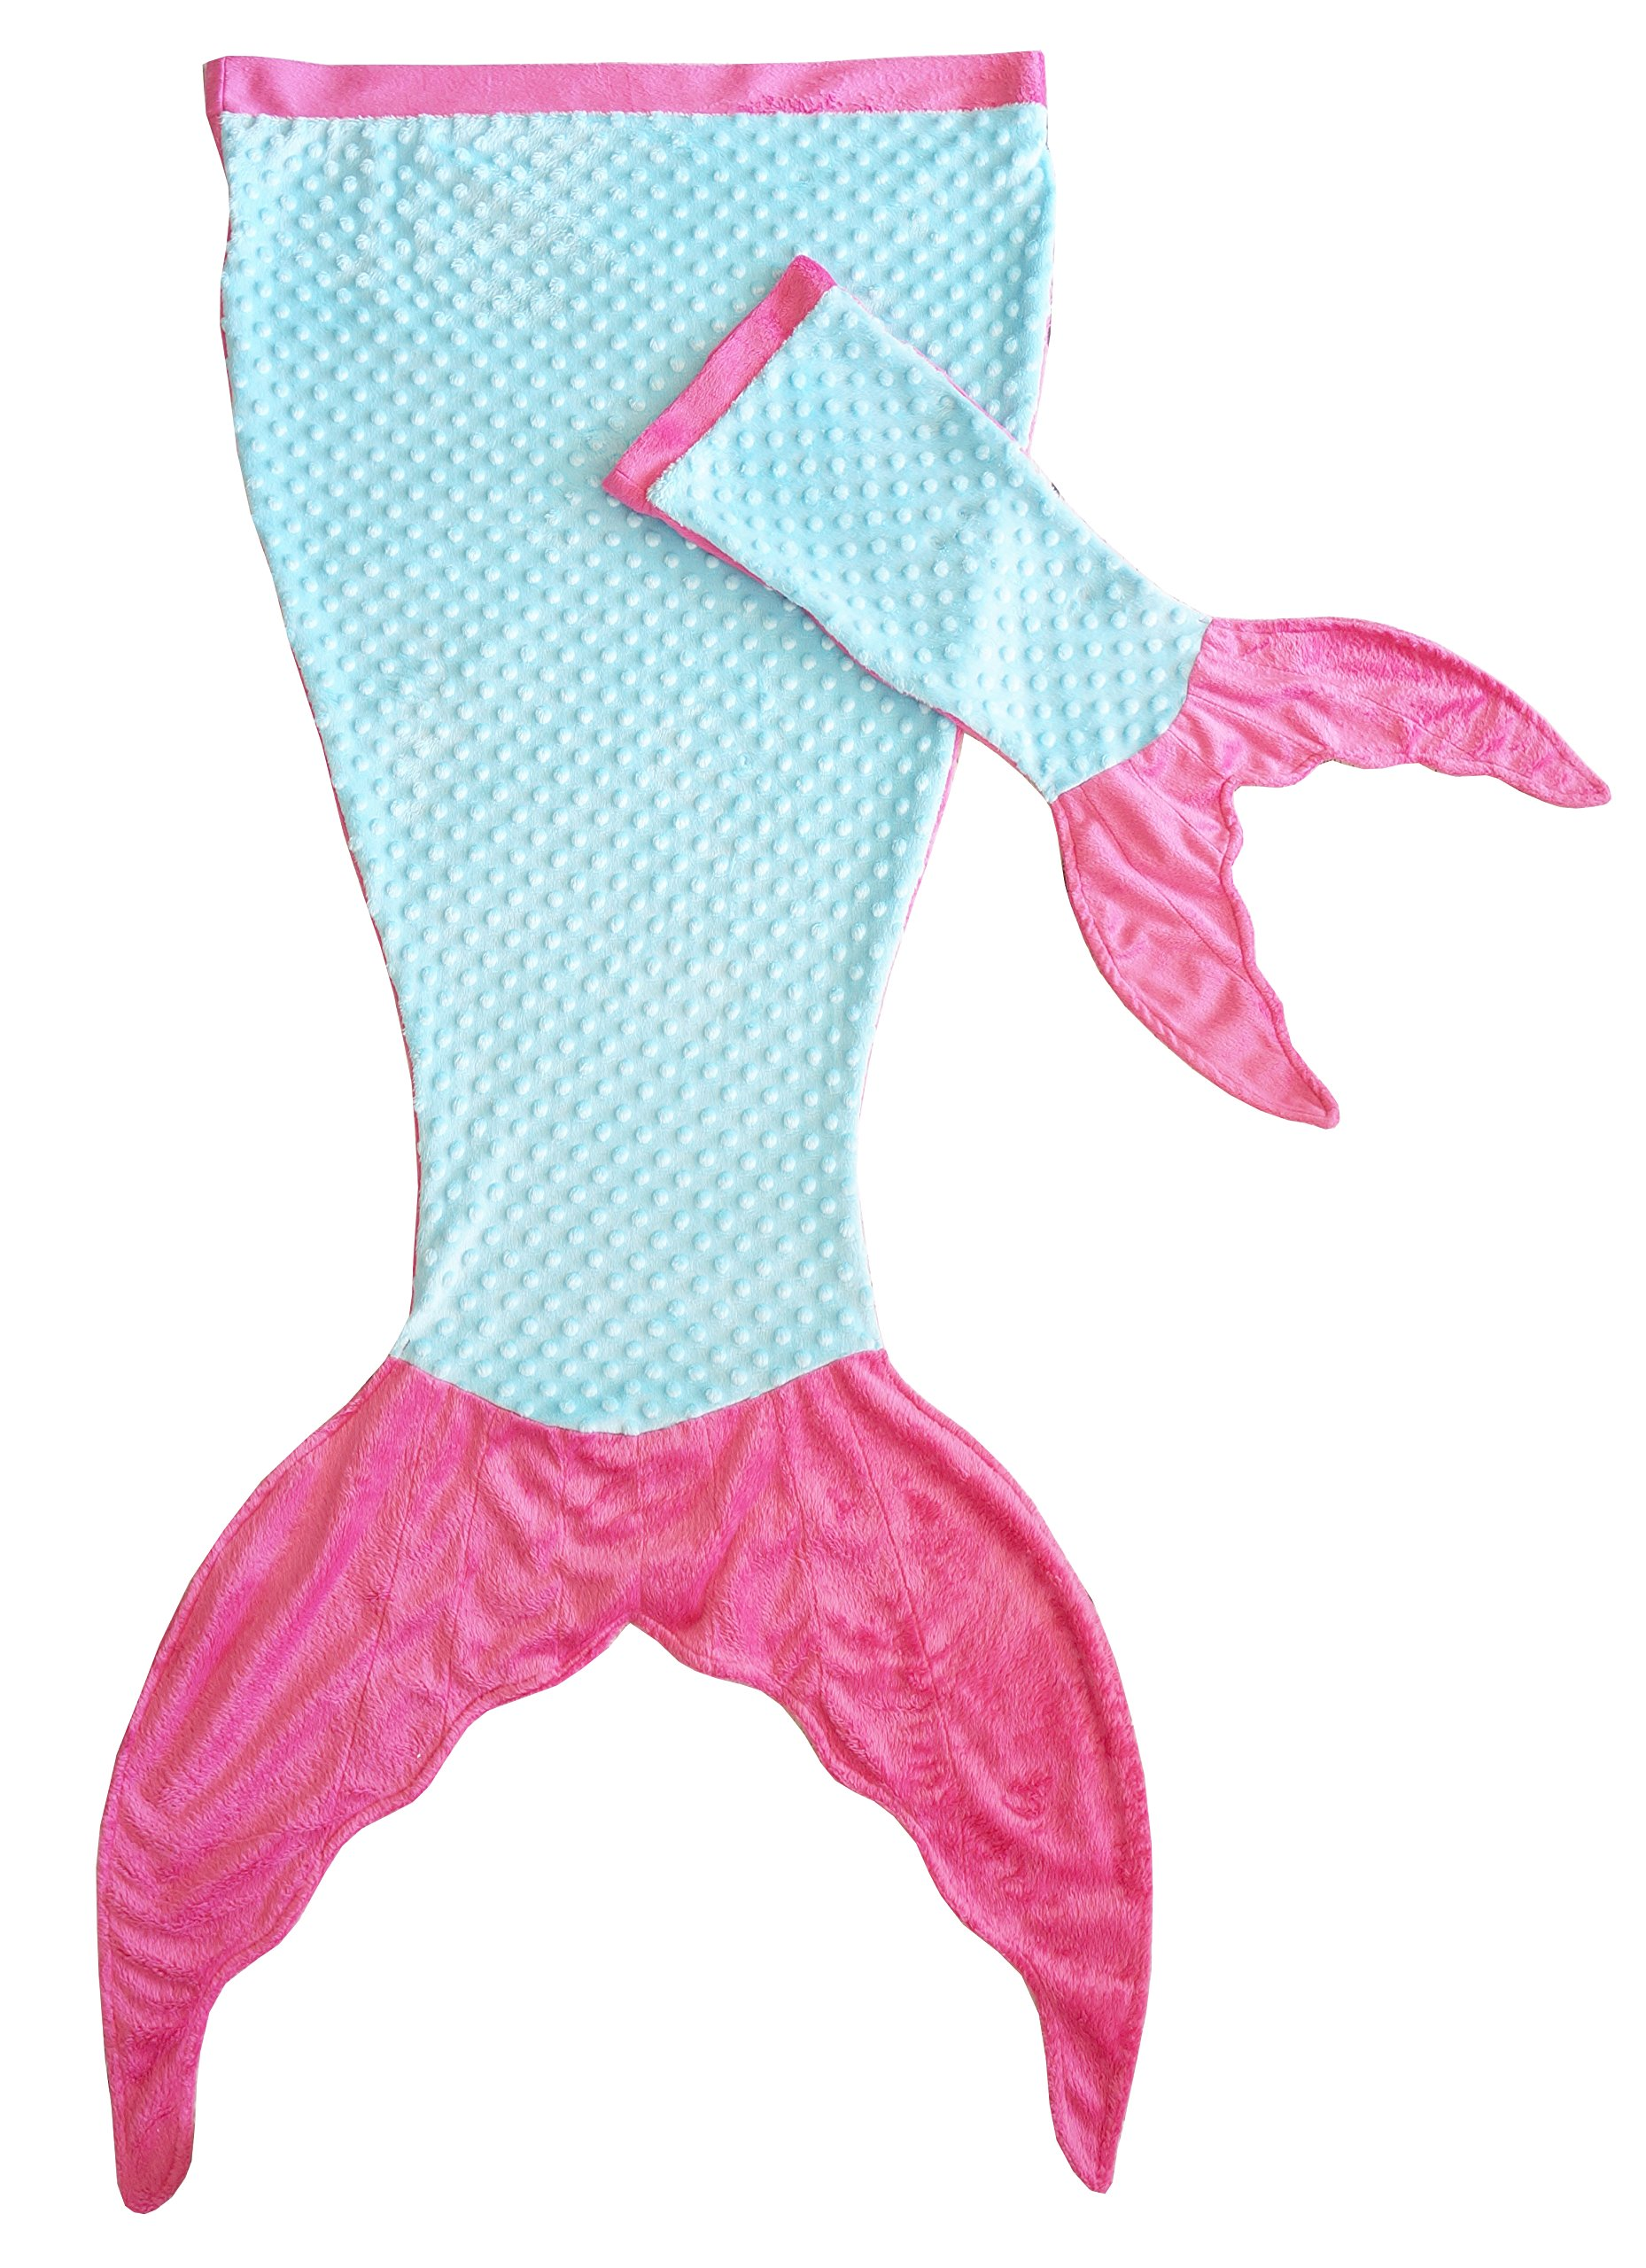 Posh Peanut Mermaid Blanket For Kids - Comfortable Blankie for Children Ages 3-13 with FREE Toy Doll Tail Blanket (Turquoise/Pink) by Posh Peanut (Image #1)